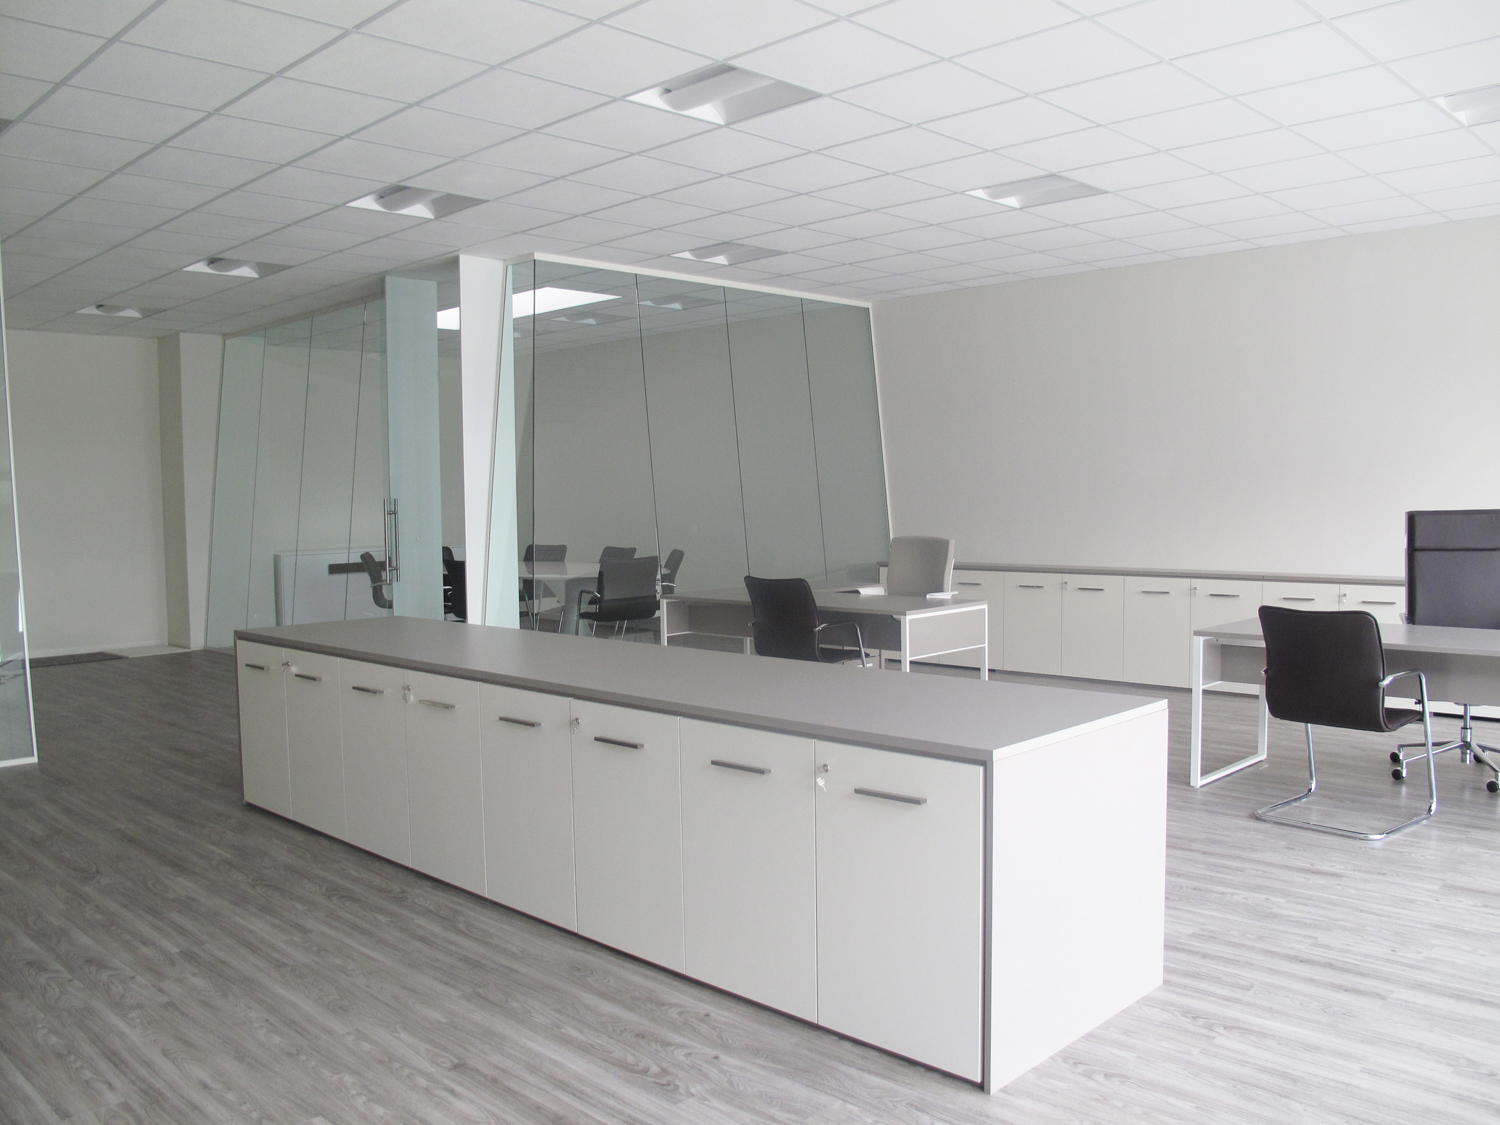 Picture of: Partition Wall Glass Office Partitions Sliding Doors Aluminium Interior Demountable Wooden Walls Internal Glazed For Designer Geocarta3 Designer Demountable Fitted Wall Partitions For Offices Glass Partitions And Wood Partitions Designed And